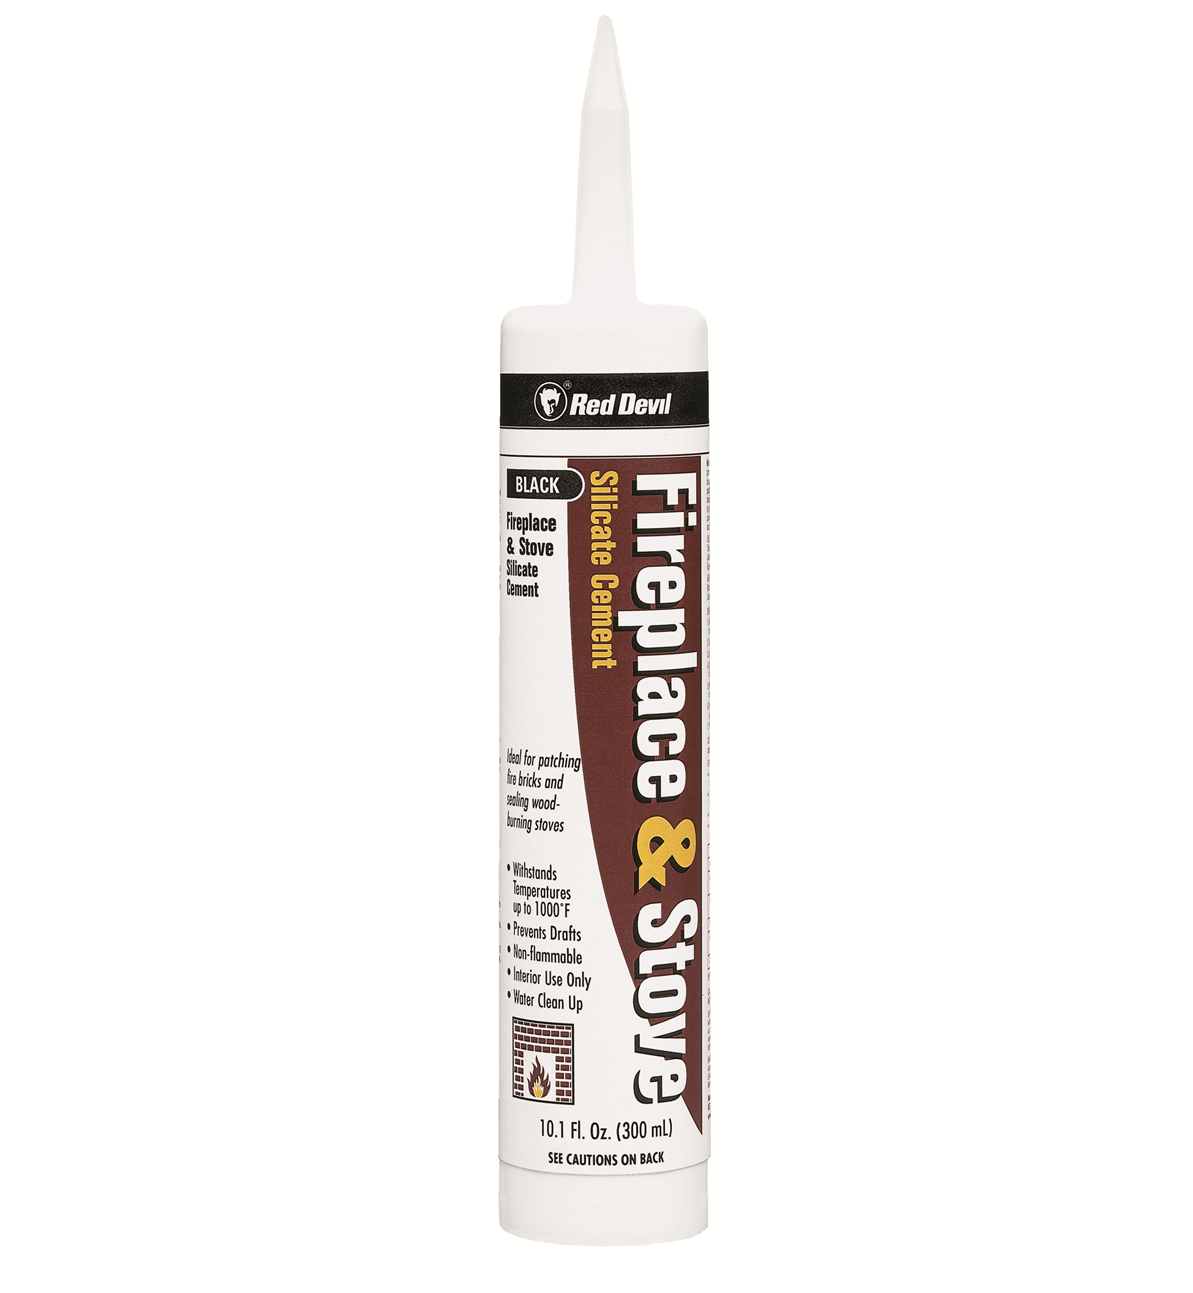 Fireplace and Stove Repair Sealant